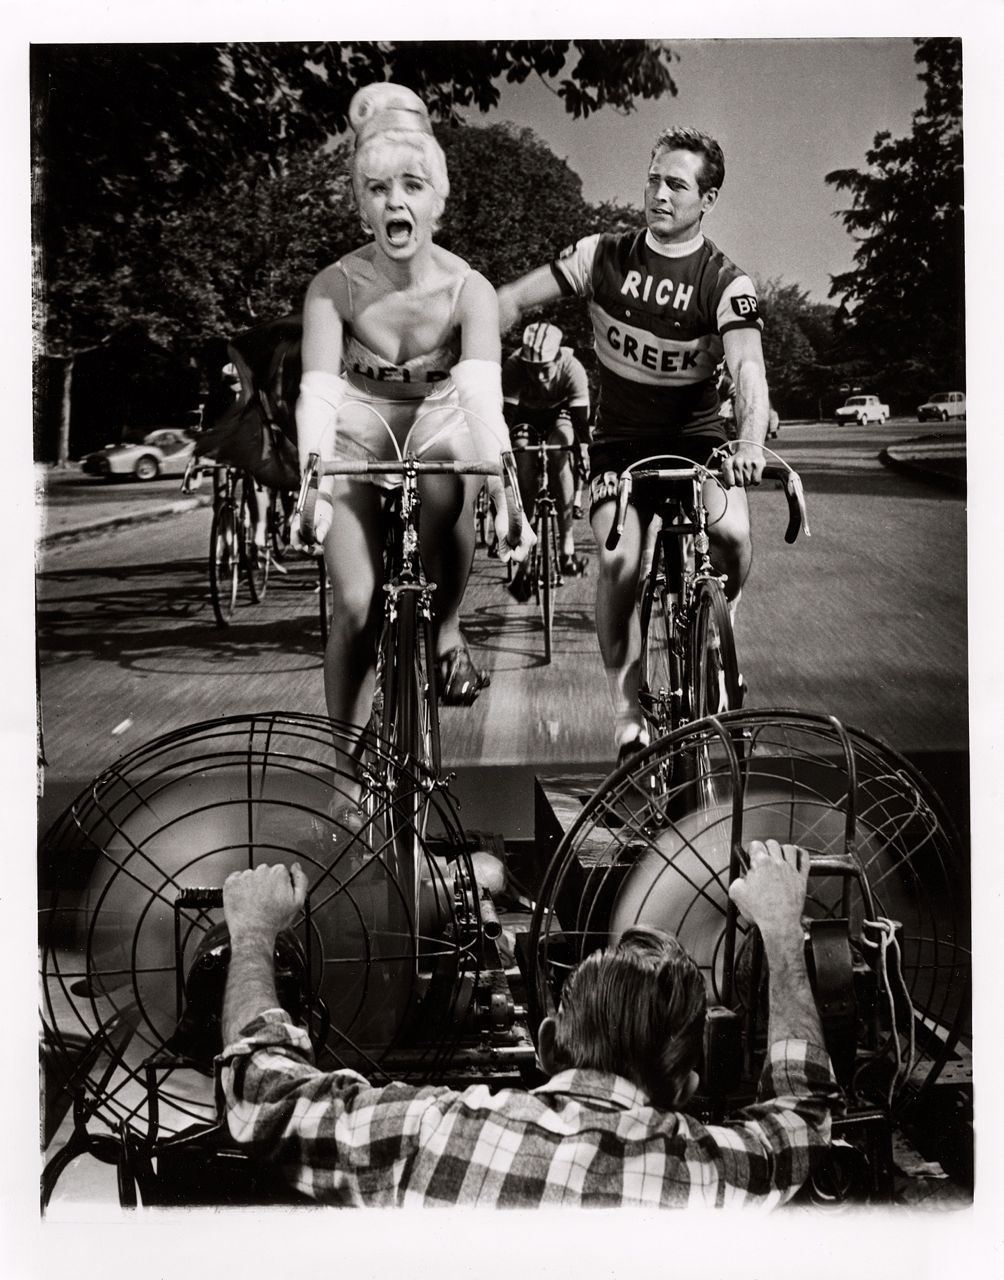 ridesabike:  Joanne Woodward and Paul Newman ride bikes.